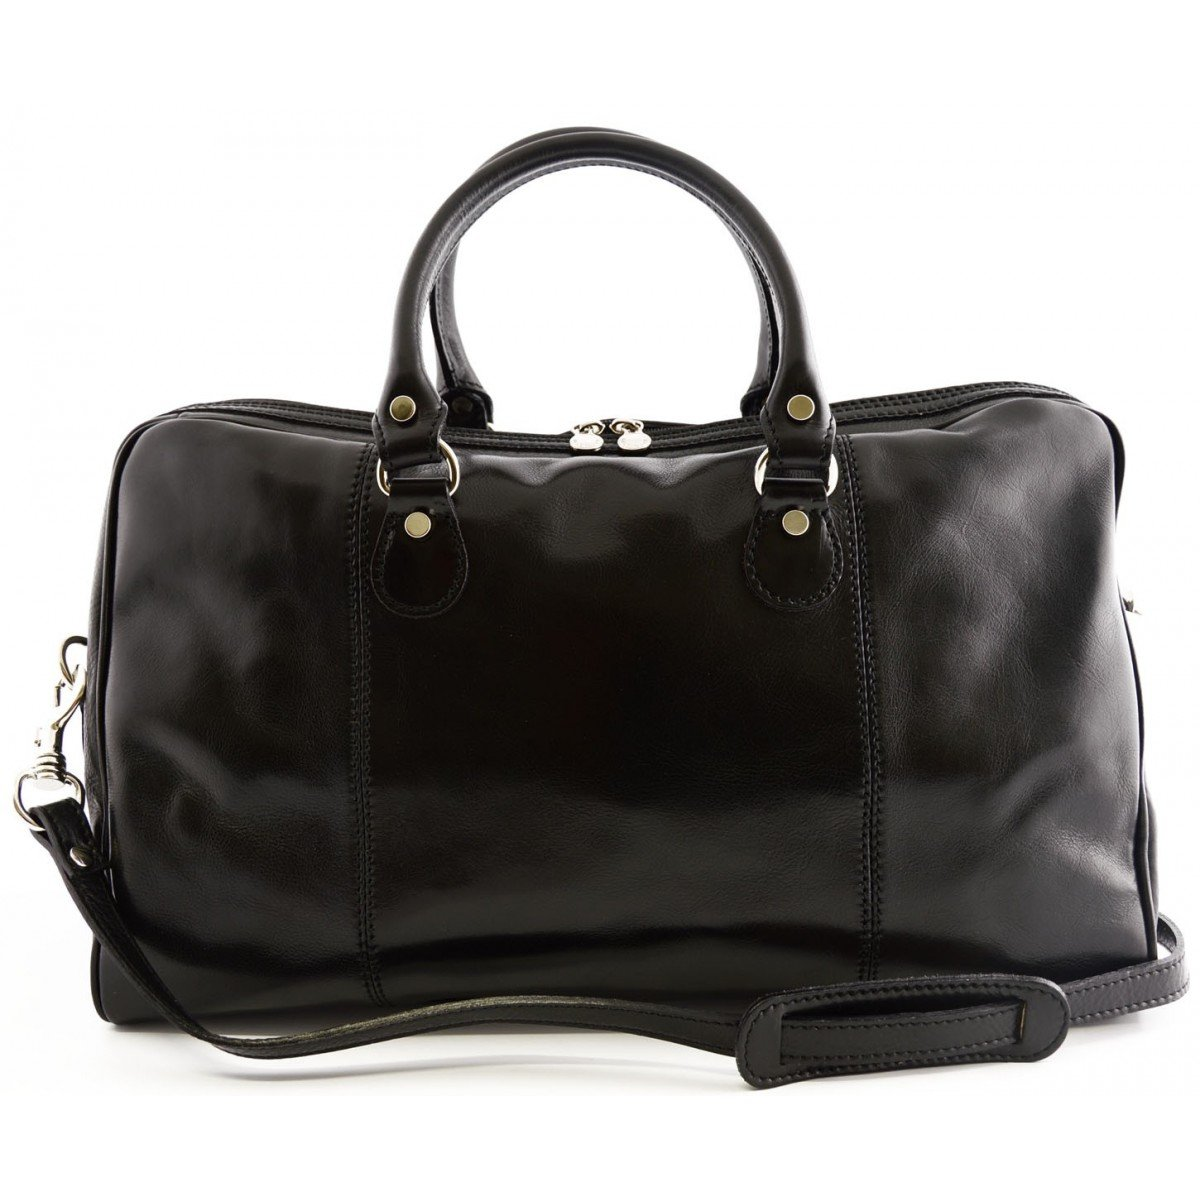 Made In Italy Genuine Leather Travel Bag With 2 Compartments And Strap Color Black - Travel Bag B017ECAC7W